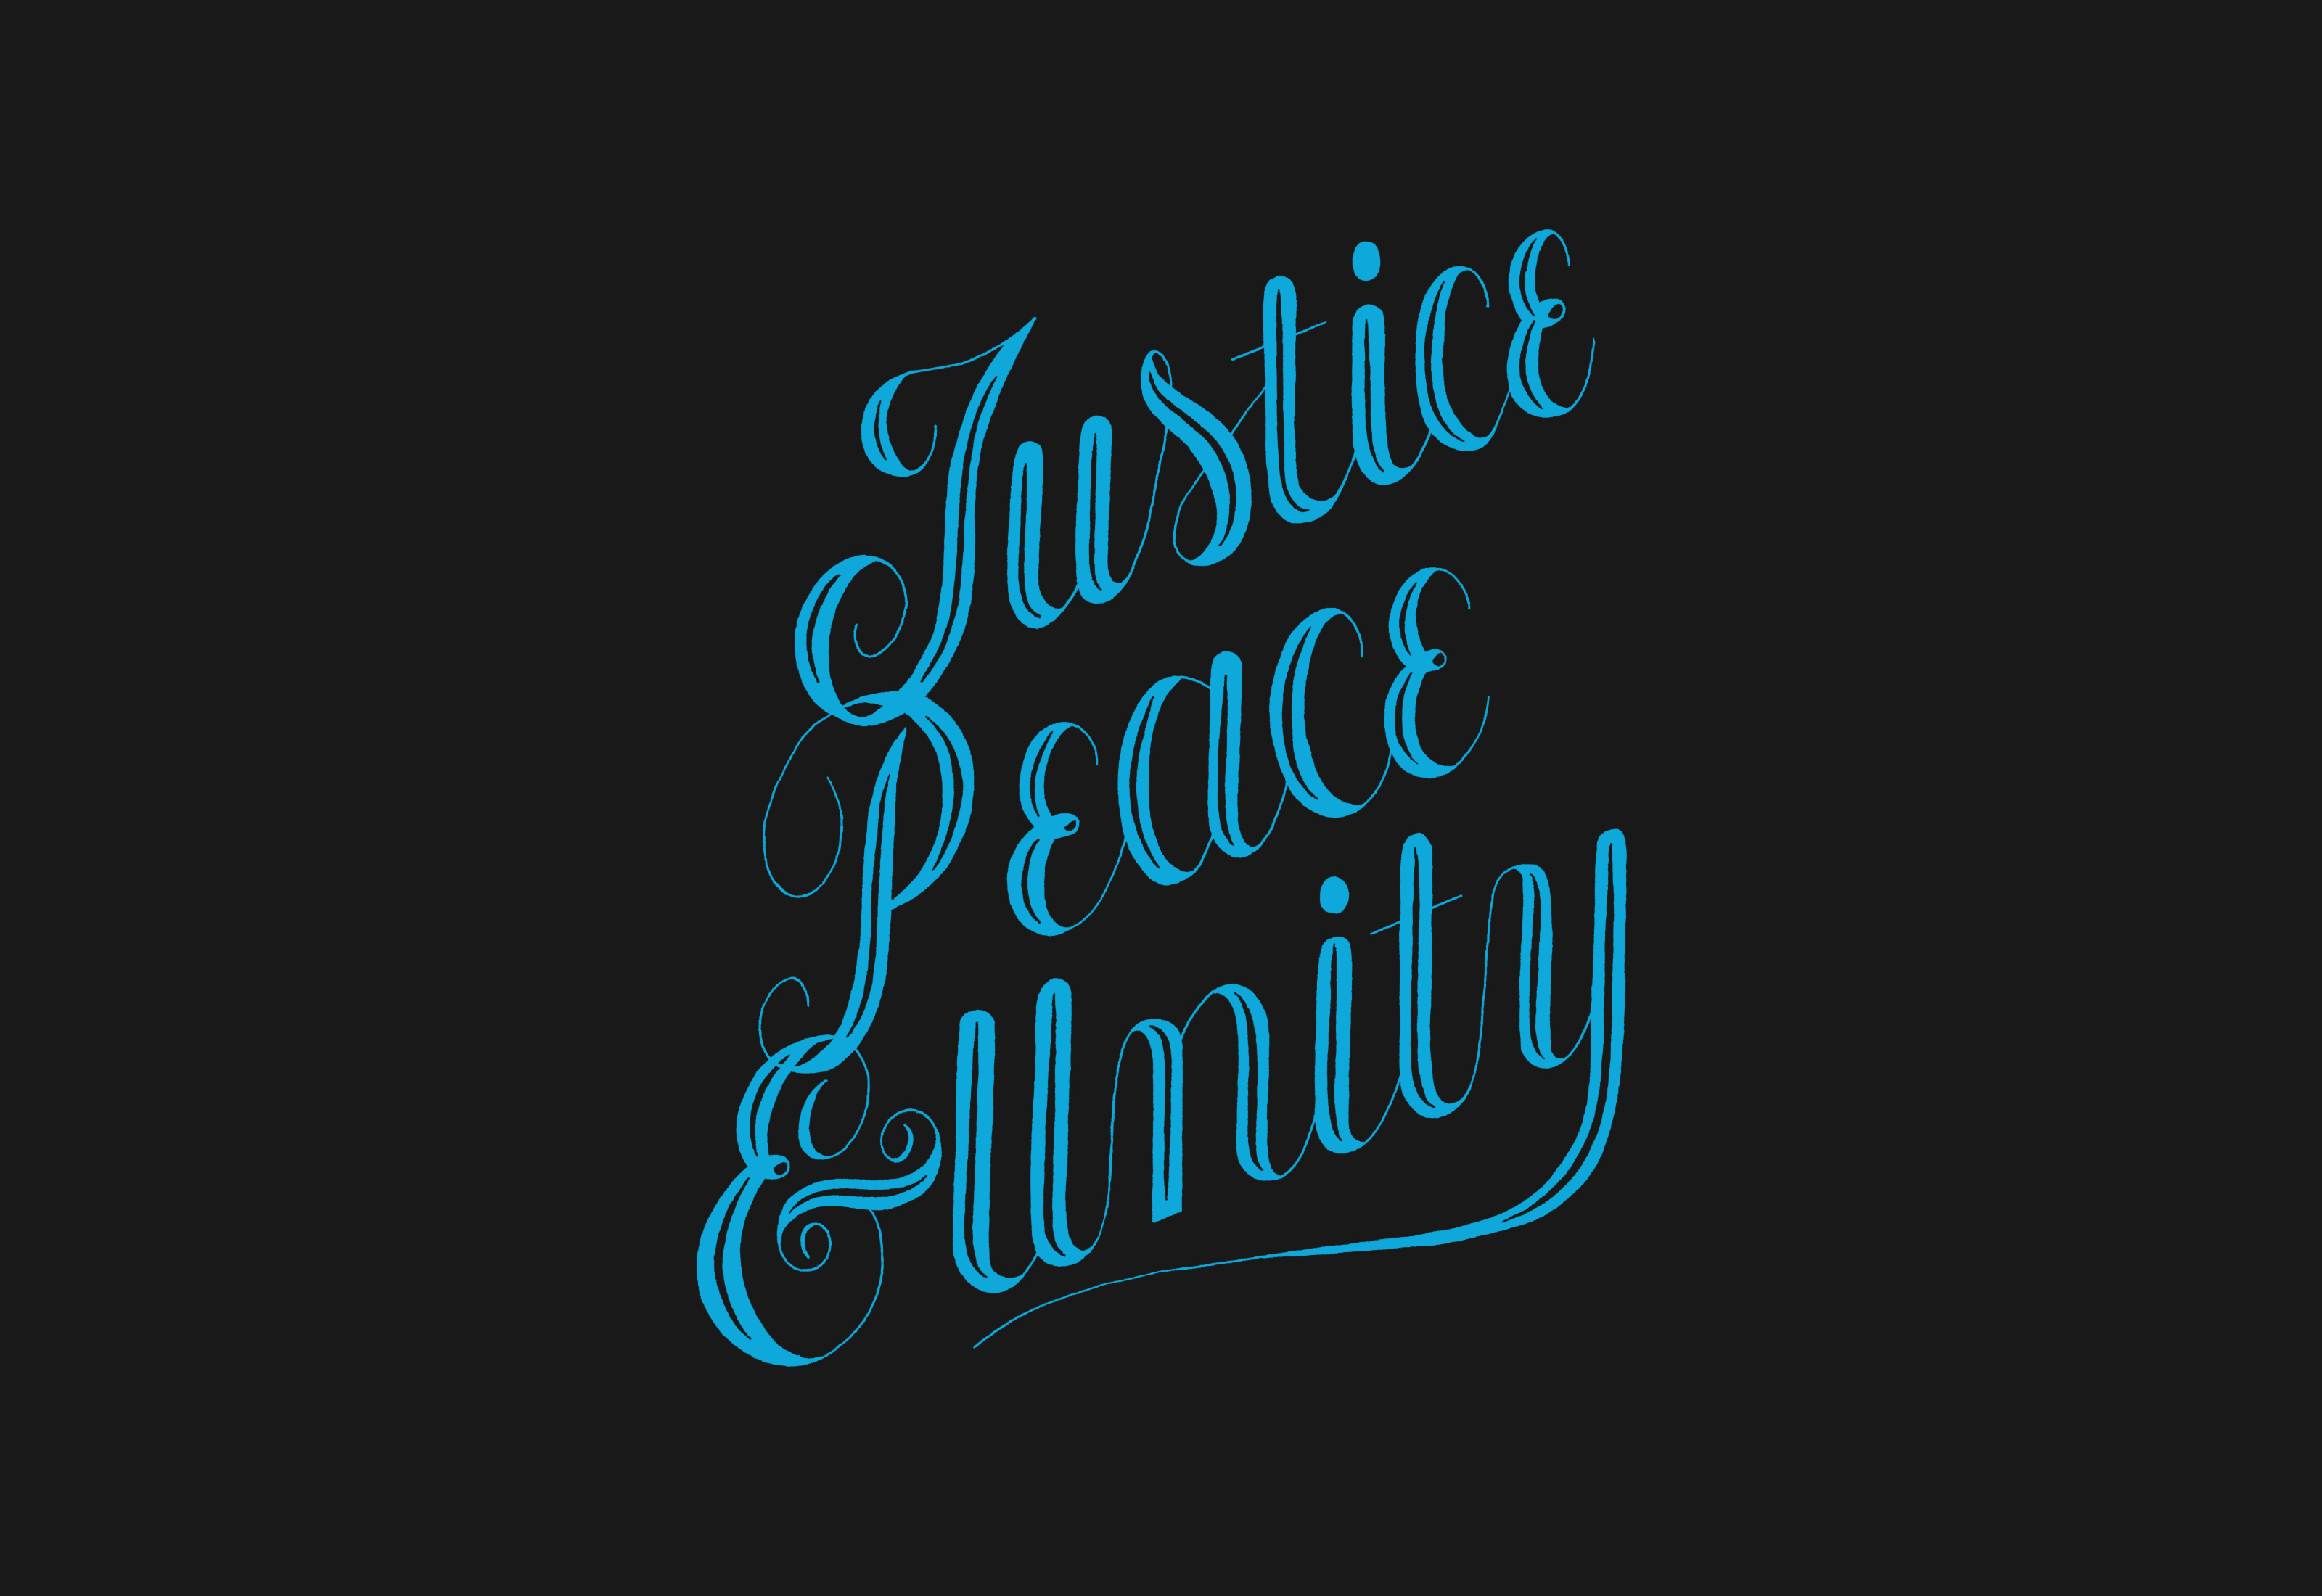 Justice Peace and Unity Lettering by Mark Lundberg